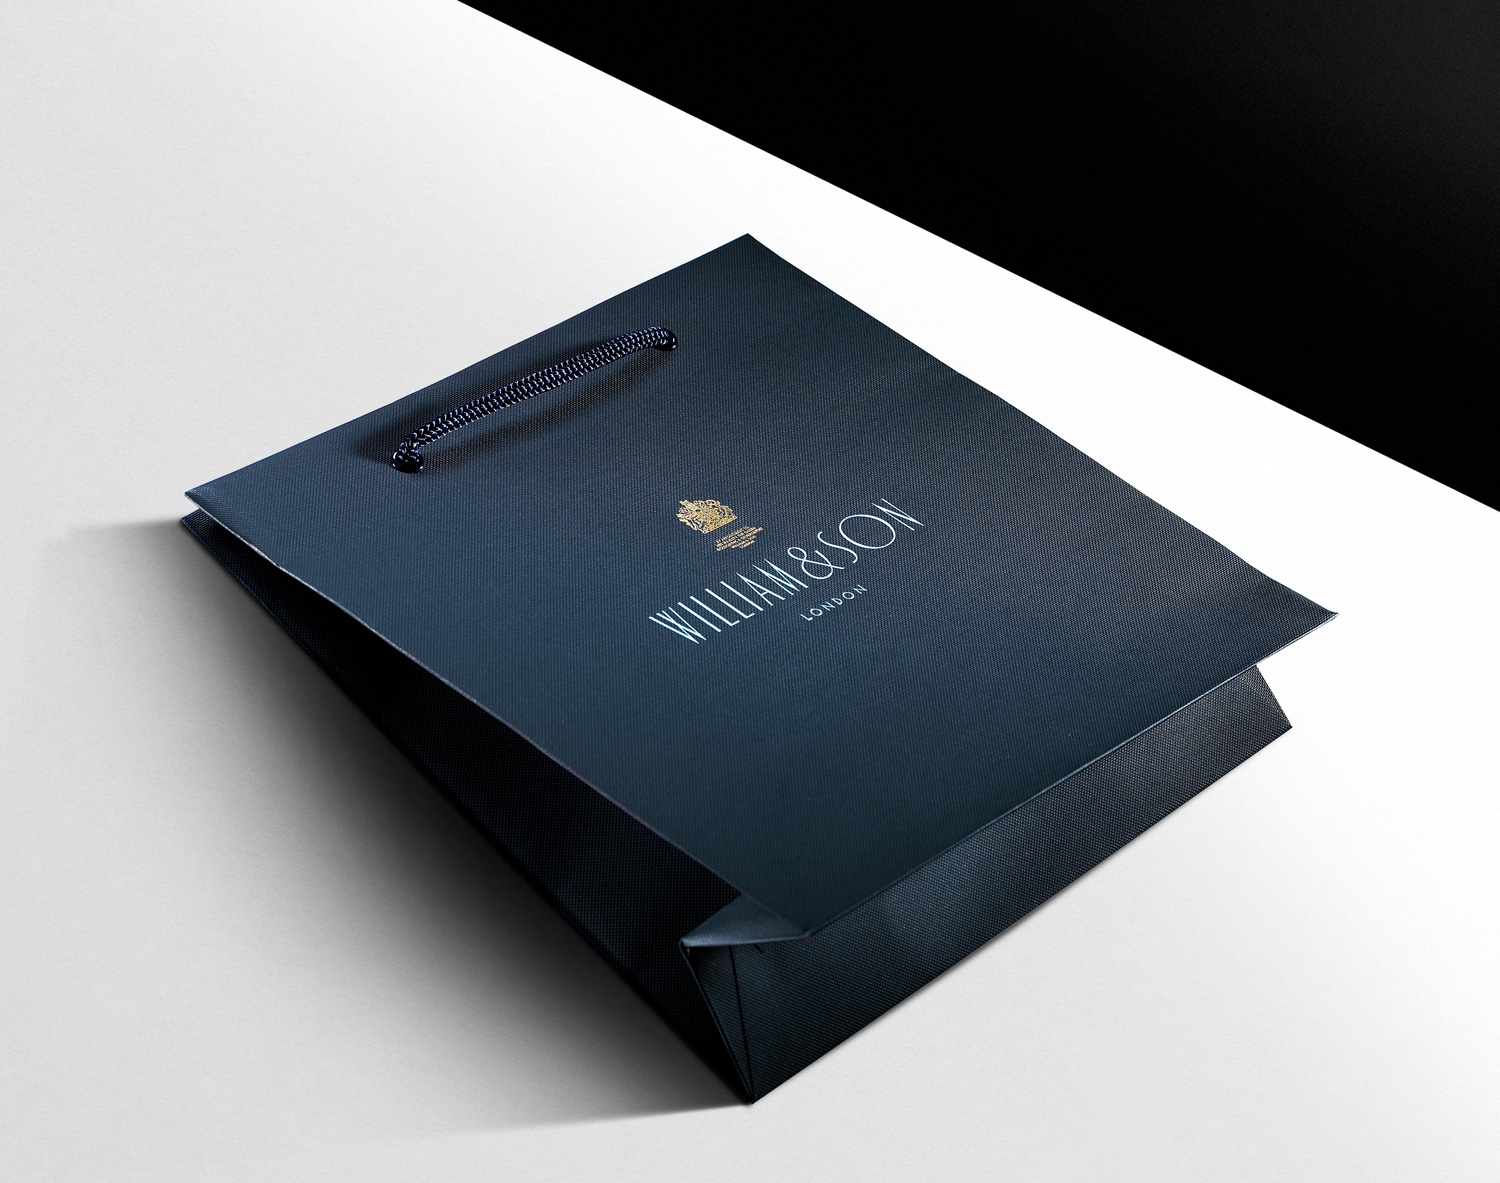 Progress Packaging WilliamSons Luxury Fashion Carrier Bag Papers Foiling Texture Menswear